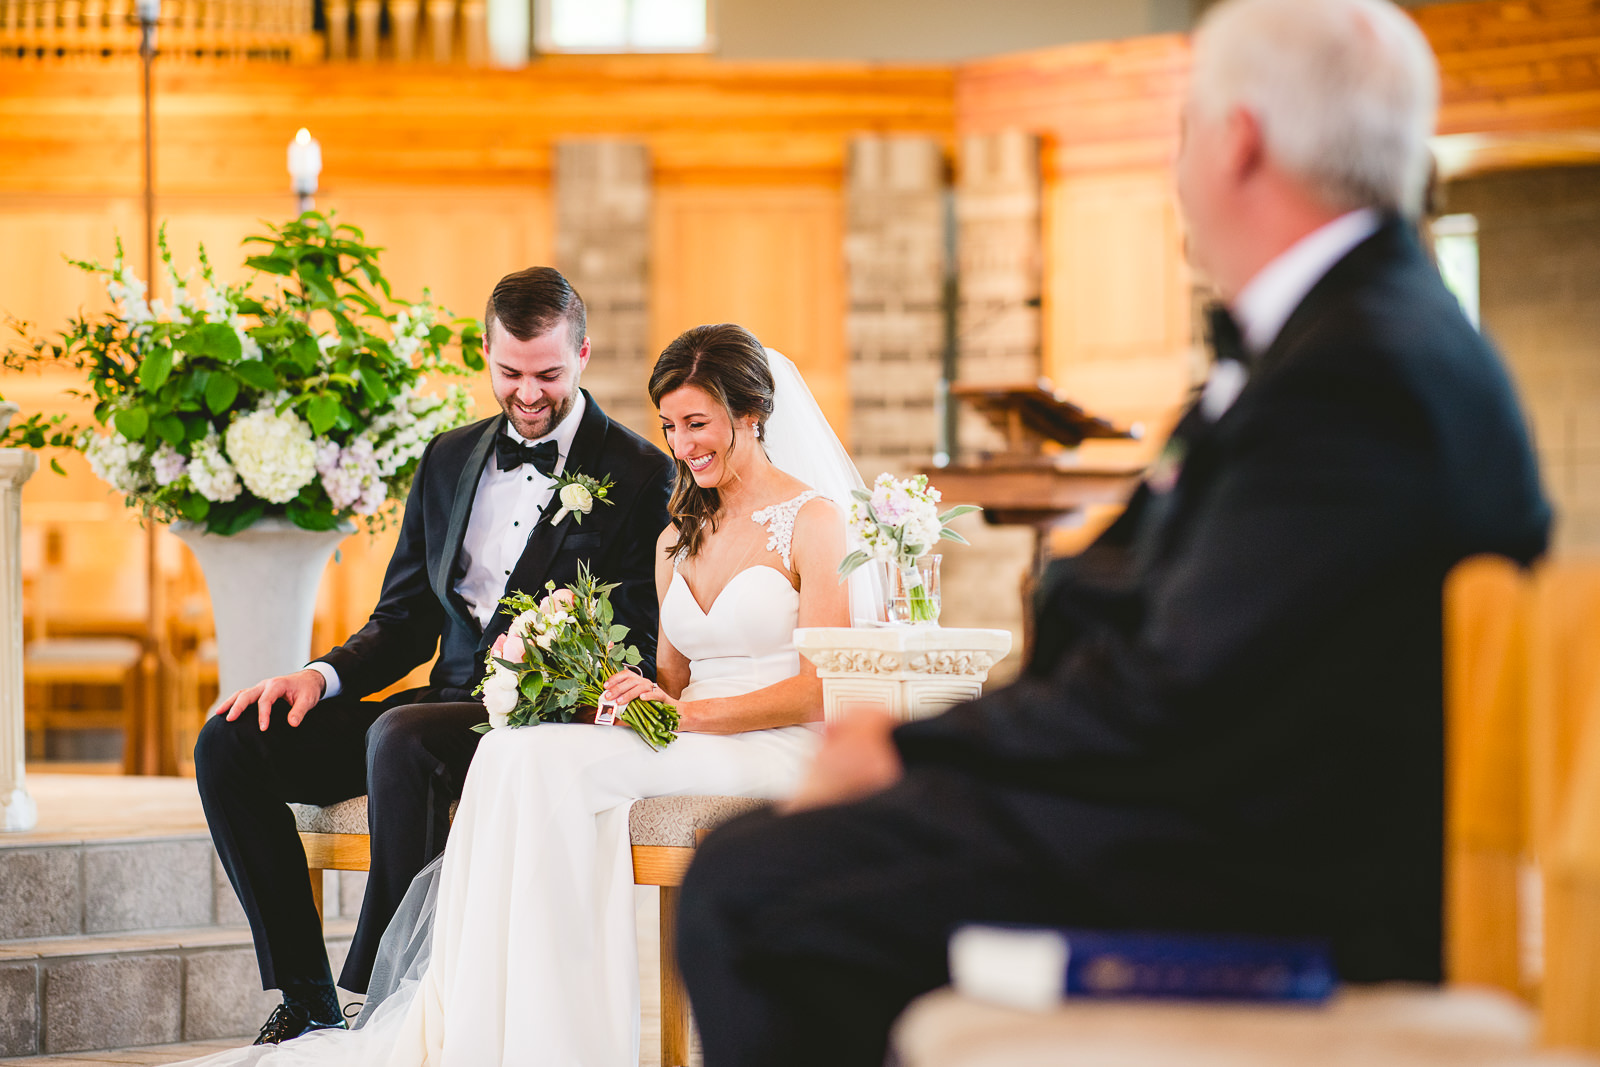 24 cleveland church wedding photos - Club of Hillbrook Wedding // Jenna + Ben